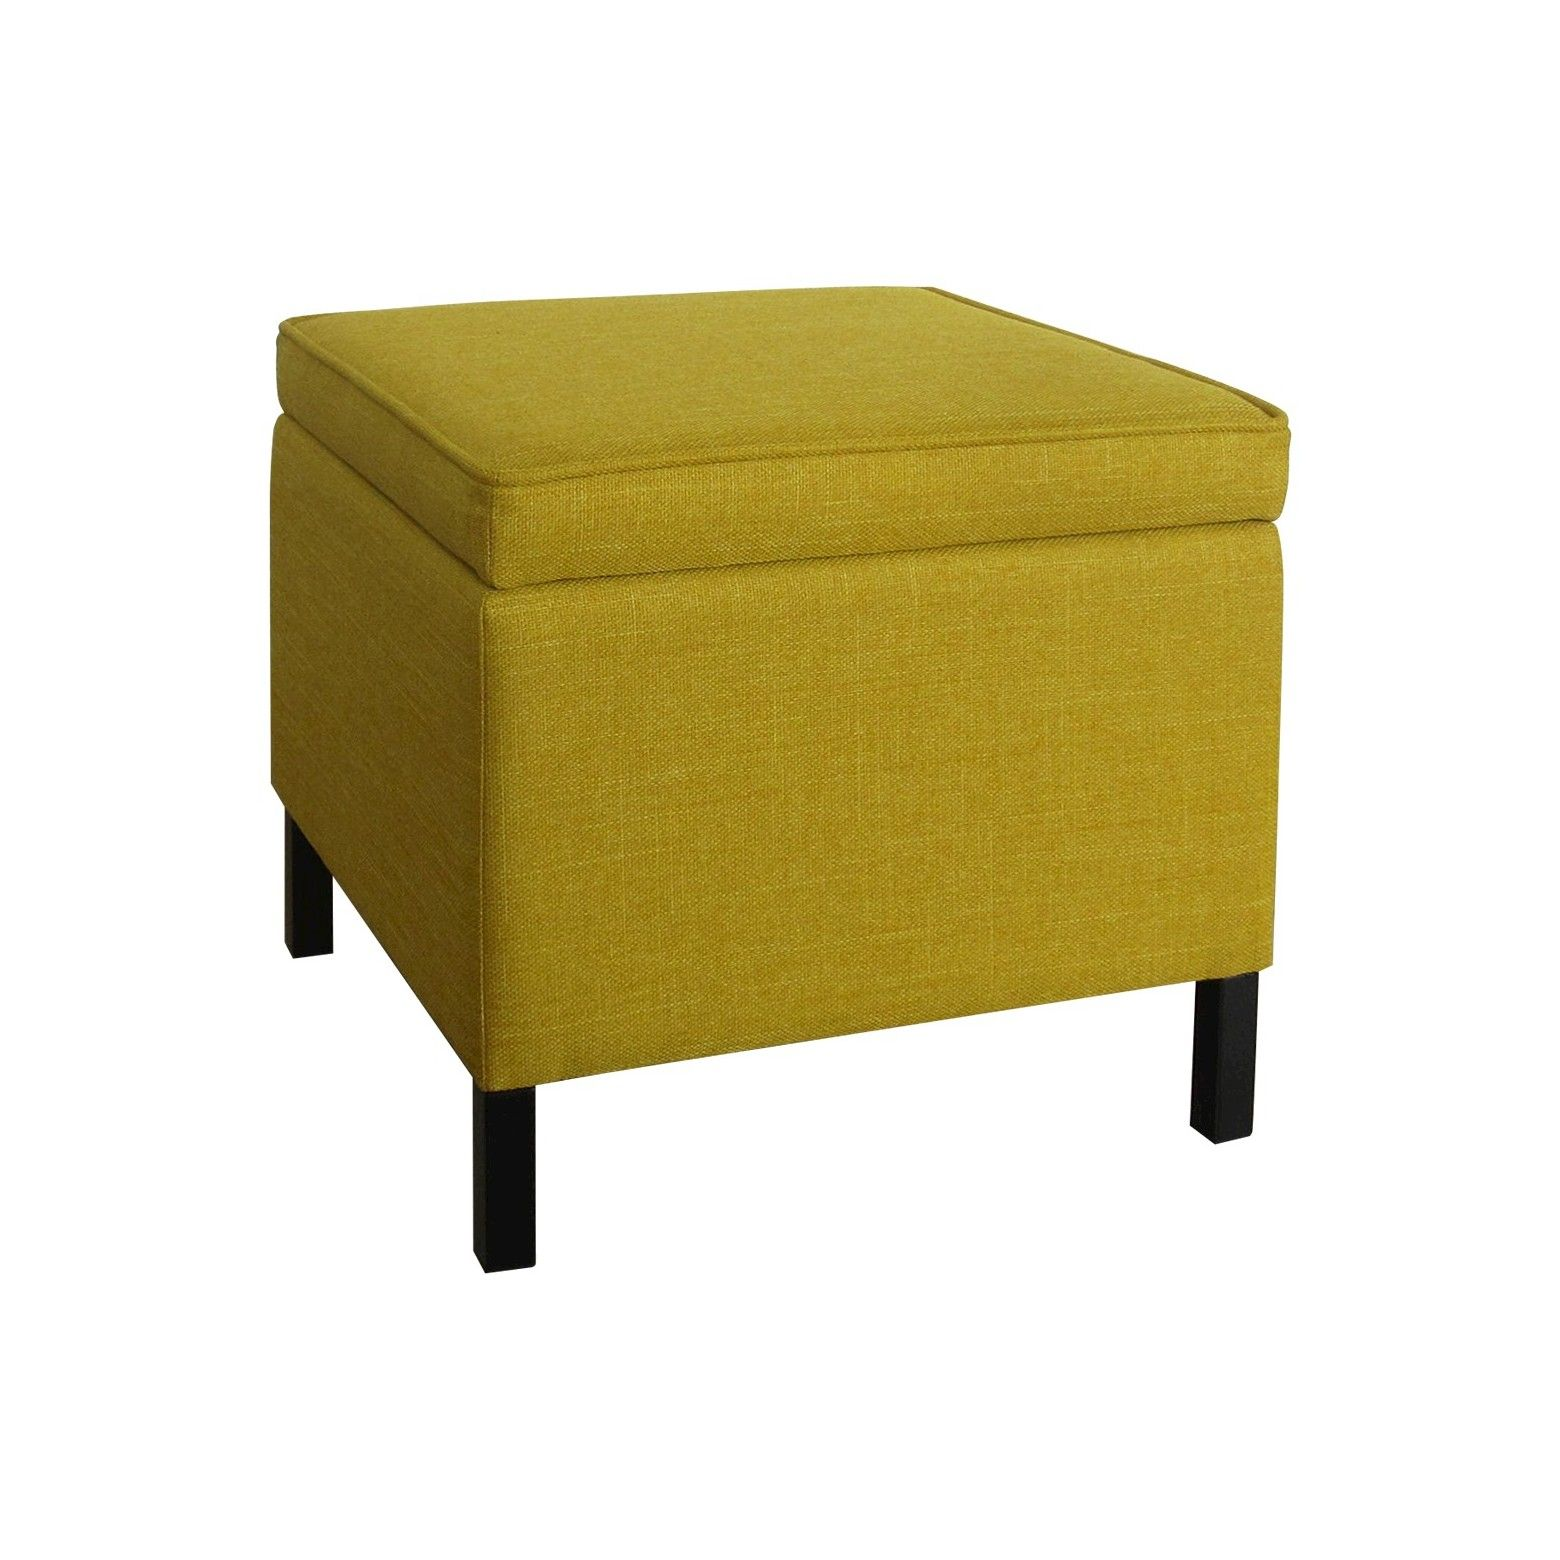 A Perfect Combination Of Form And Function The Room Essentials Storage Ottoman Yellow Is A Great Way To Add Additi Storage Ottoman Room Essentials Yellow Room